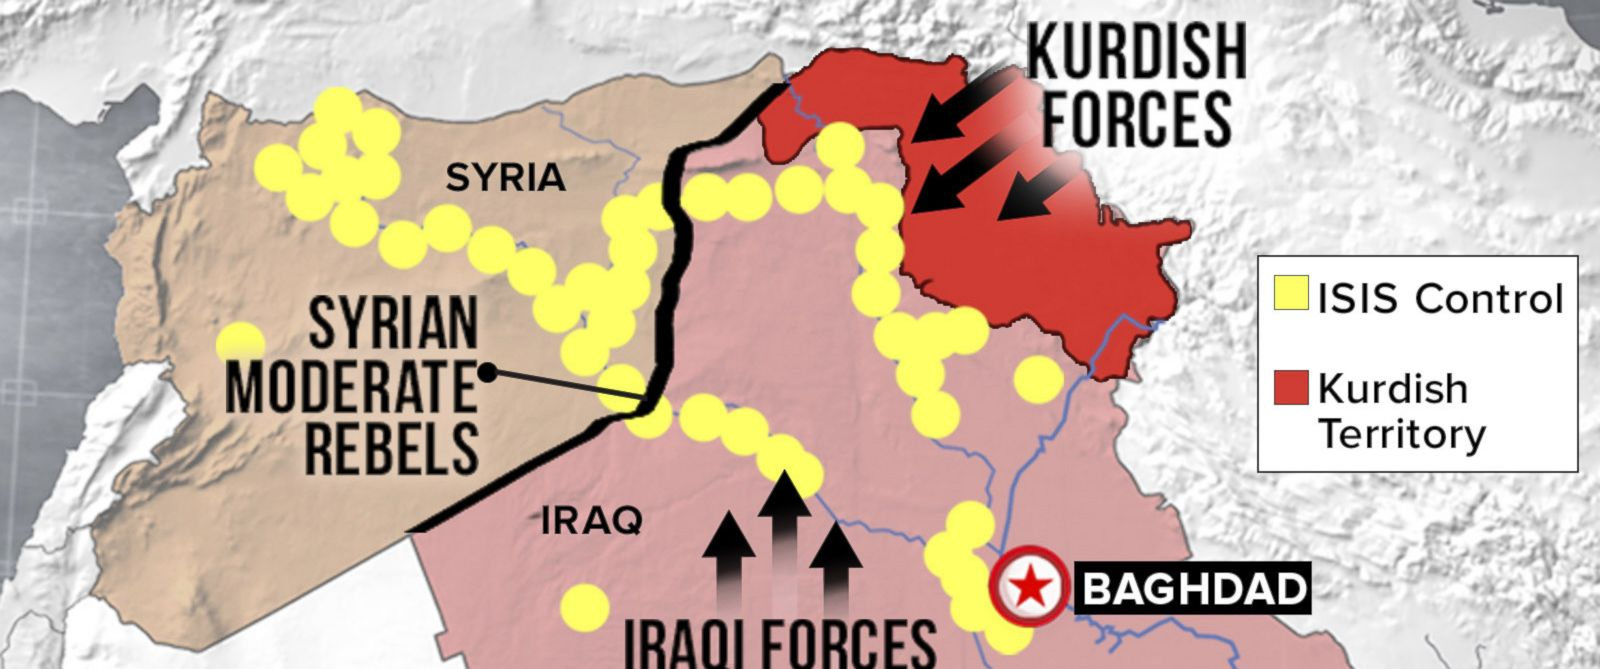 PHOTO: Obama Administration's Strategy for Defeating Isis in Iraq